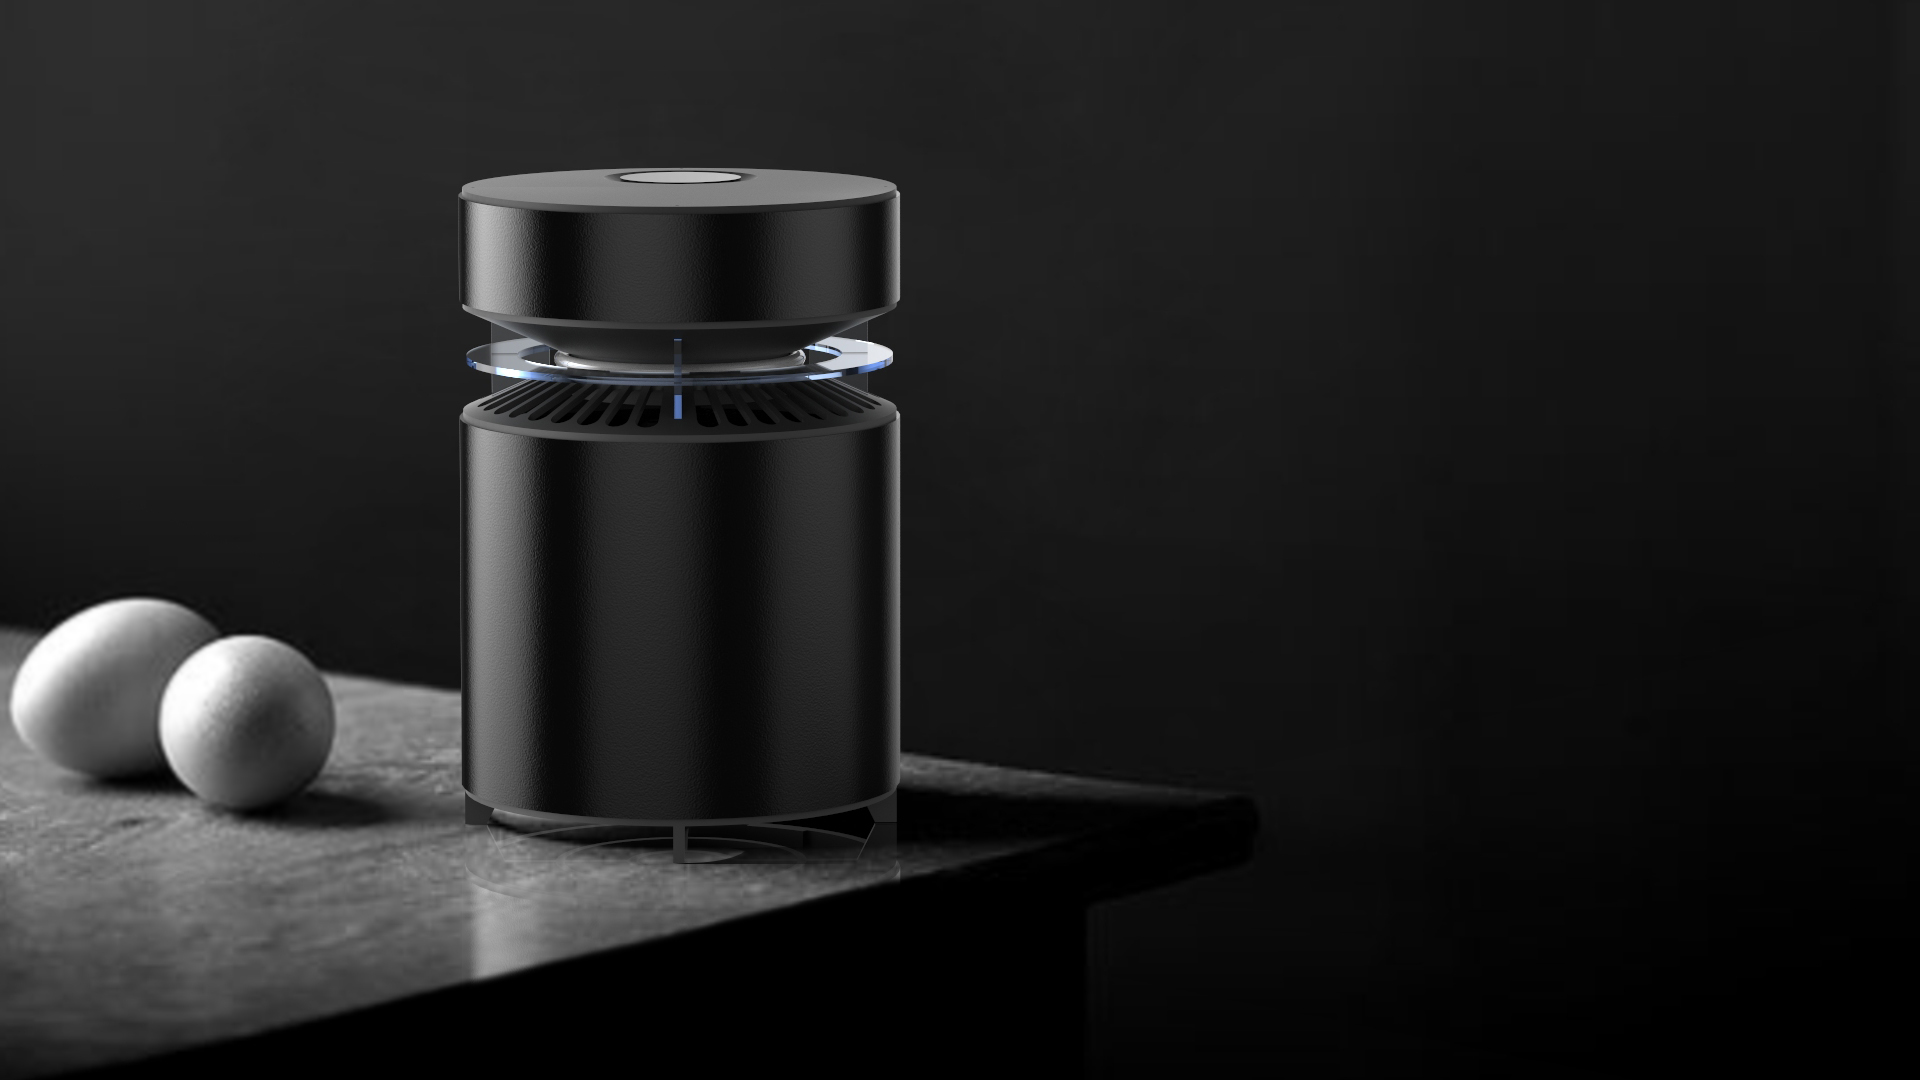 Suction type Mosquito Killer with Ultrasonic Dispeller